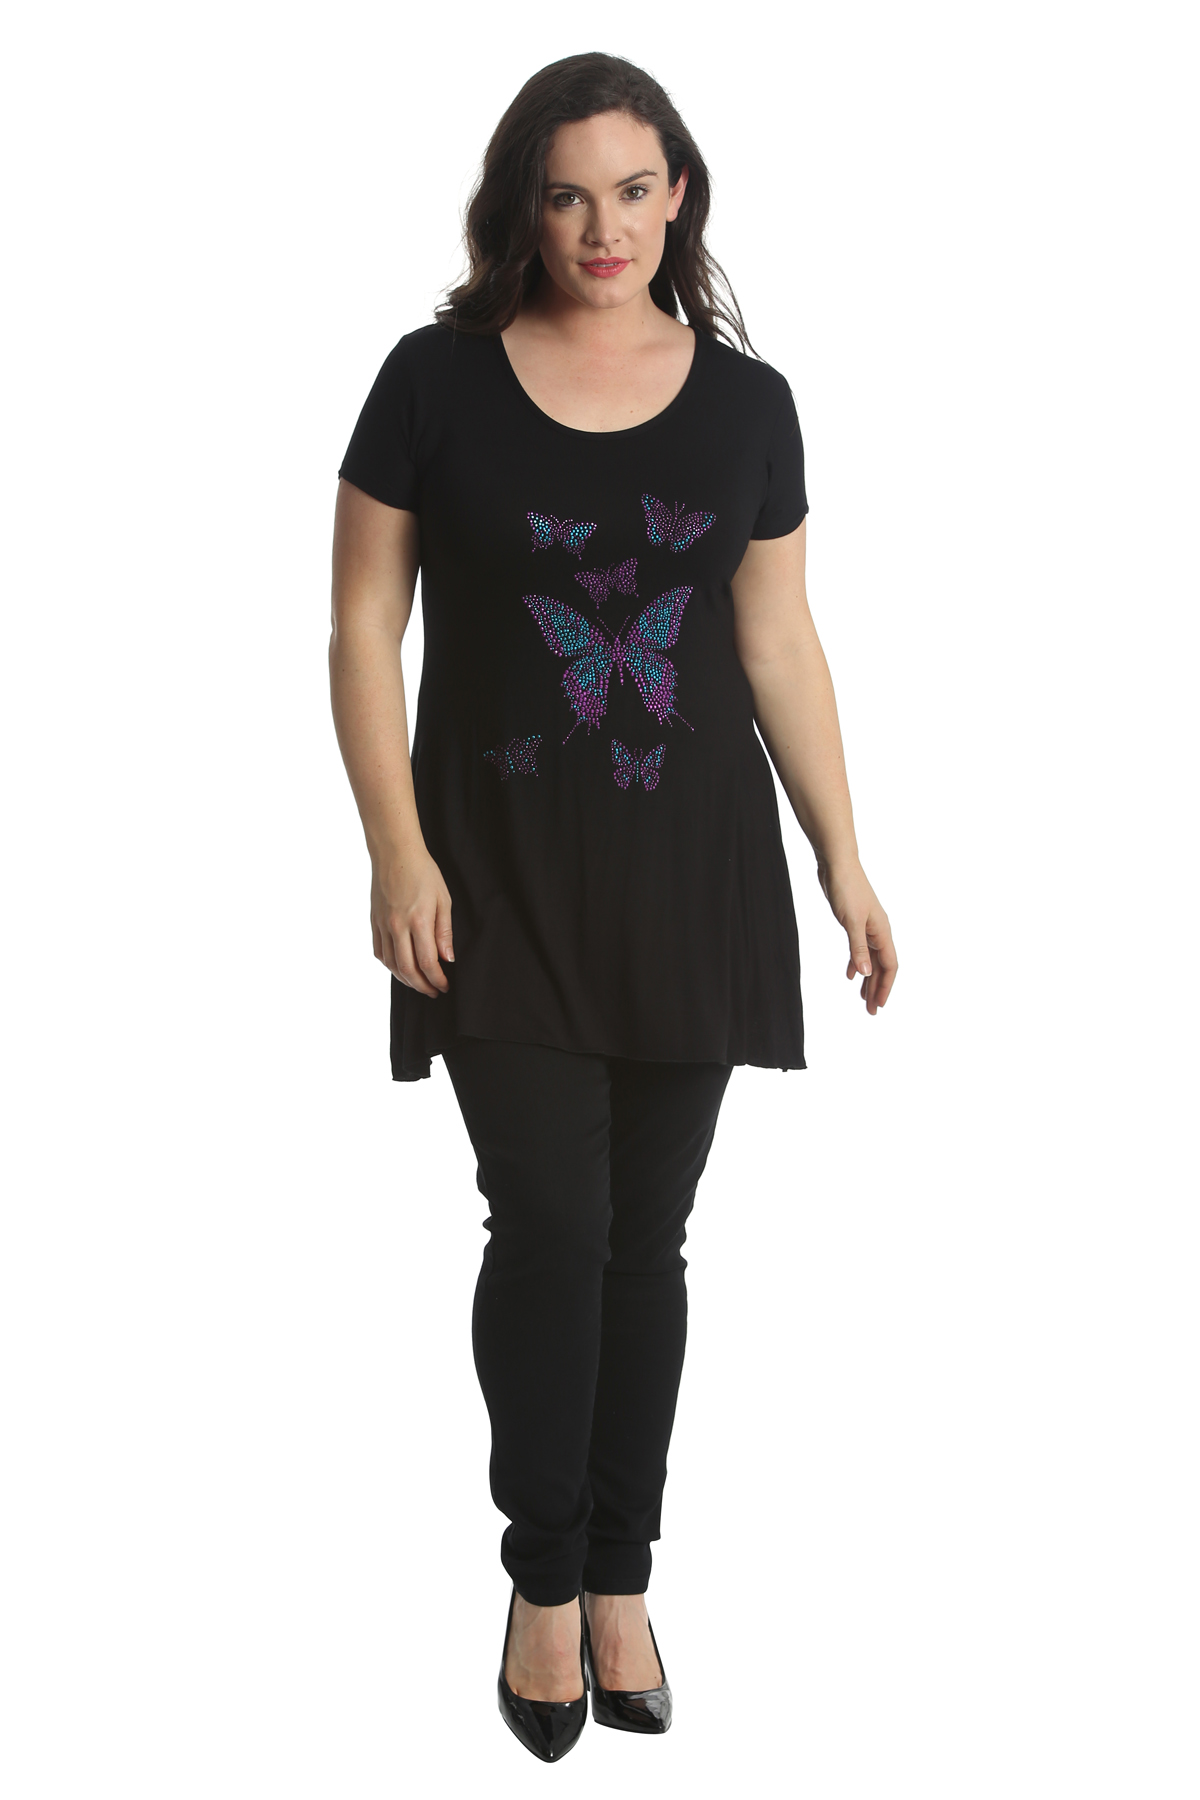 New Ladies Tops Womens Plus Size Butterfly Rhinestone Stud Shirt Nouvelle 14-28